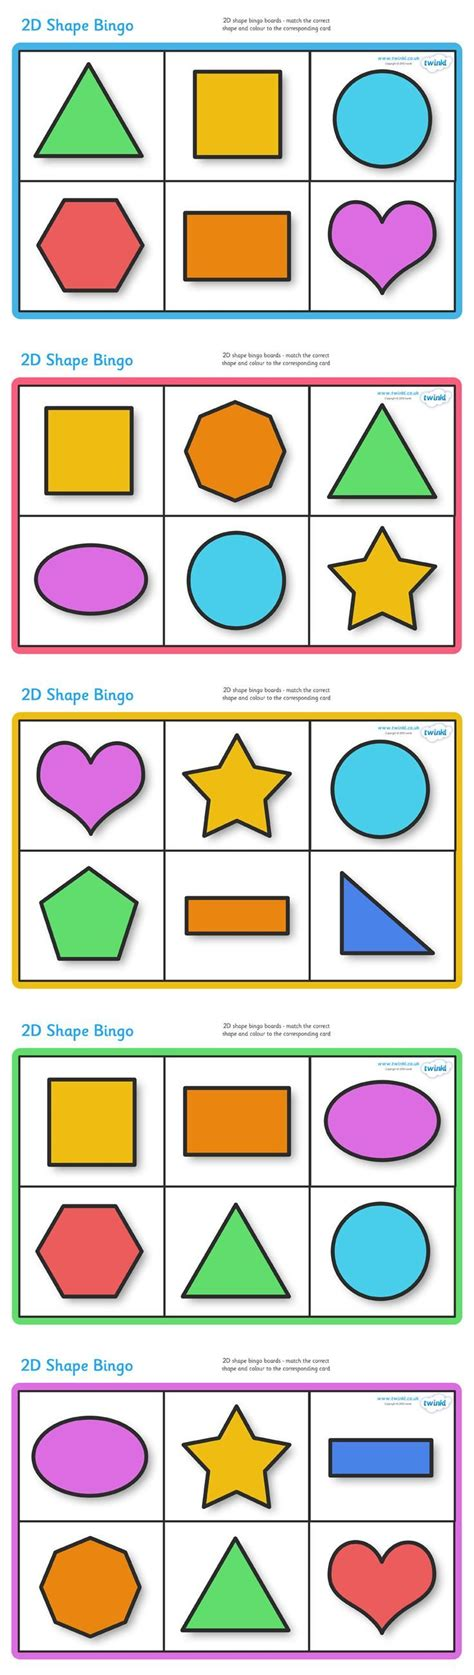 printable game board shapes twinkl resources gt gt 2d shape bingo gt gt classroom printables